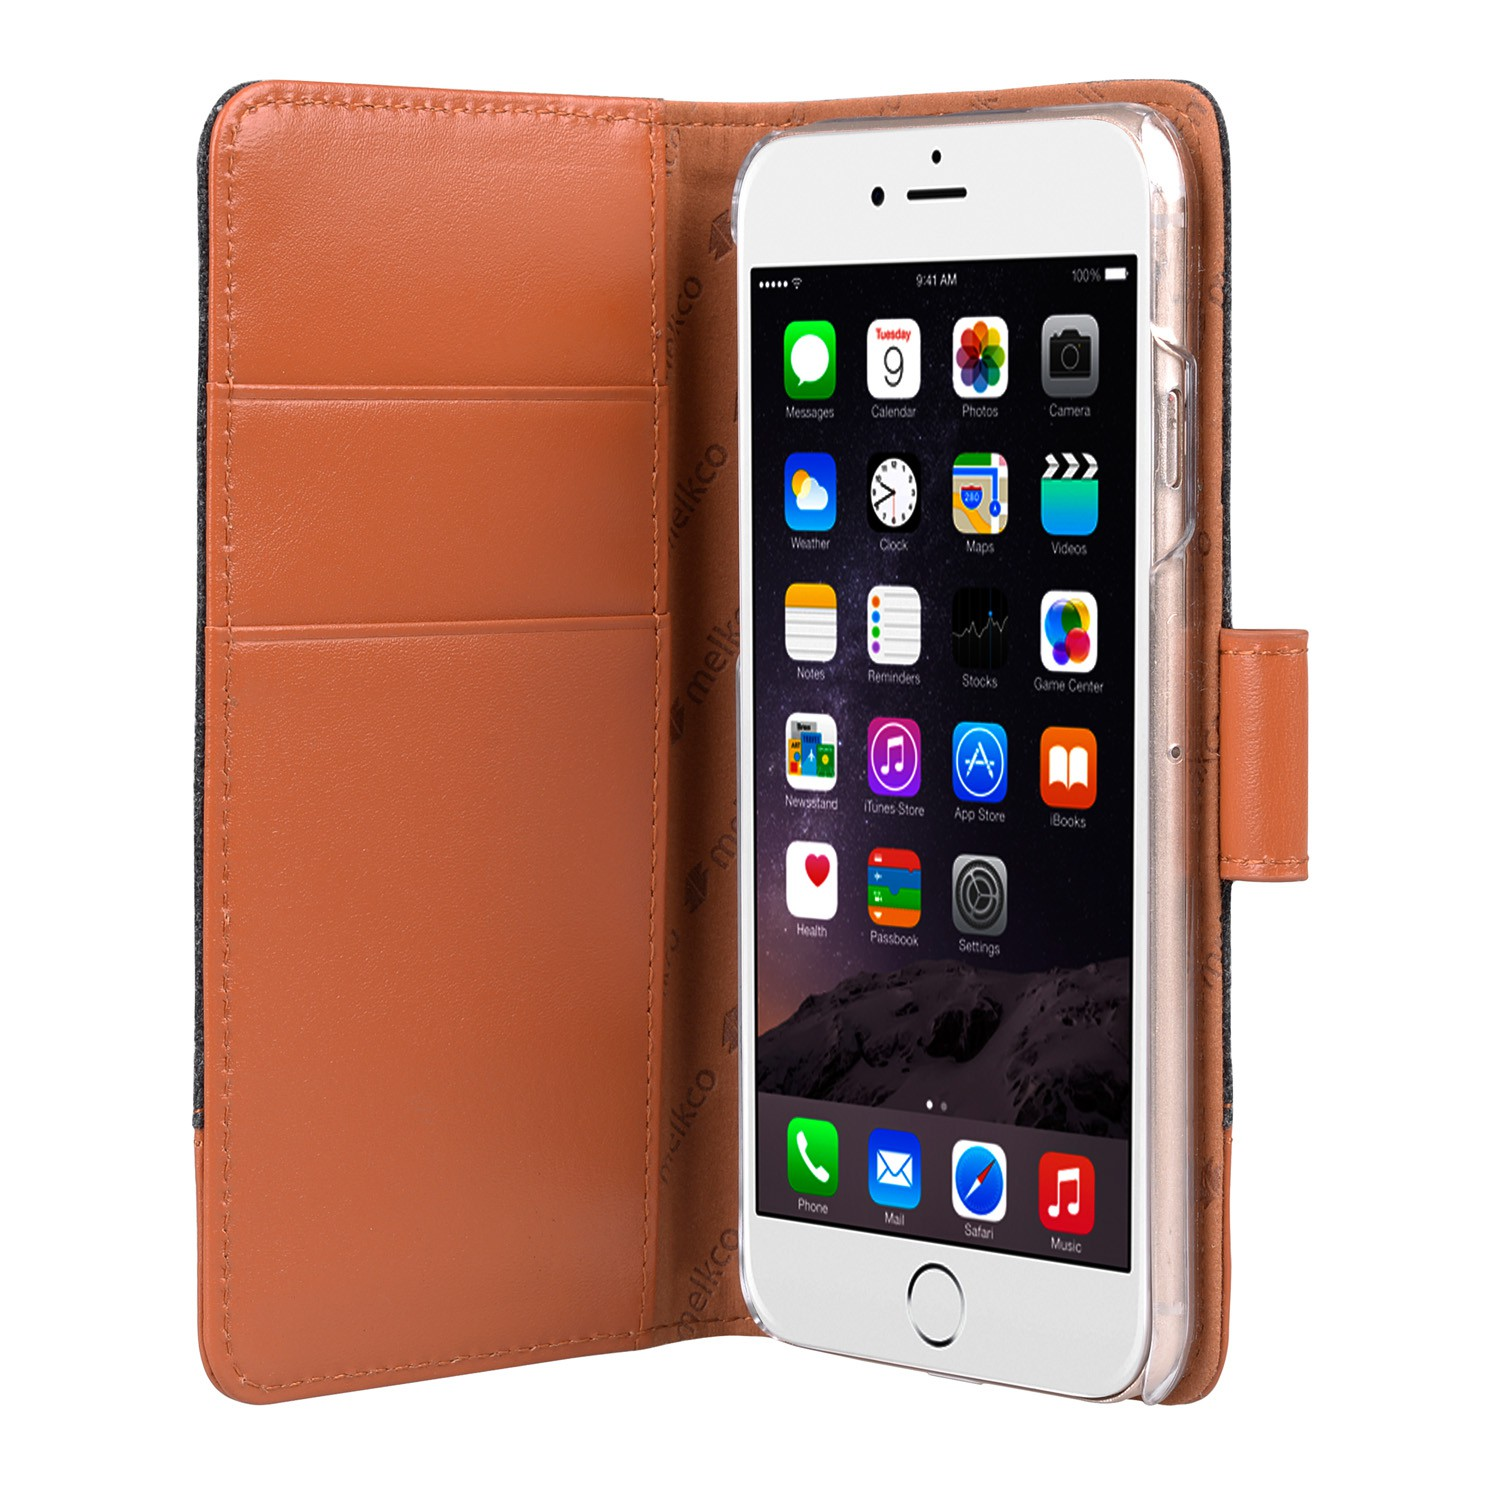 Melkco Holmes Wallet Case iPhone 6/6S Grey/Brown - 3